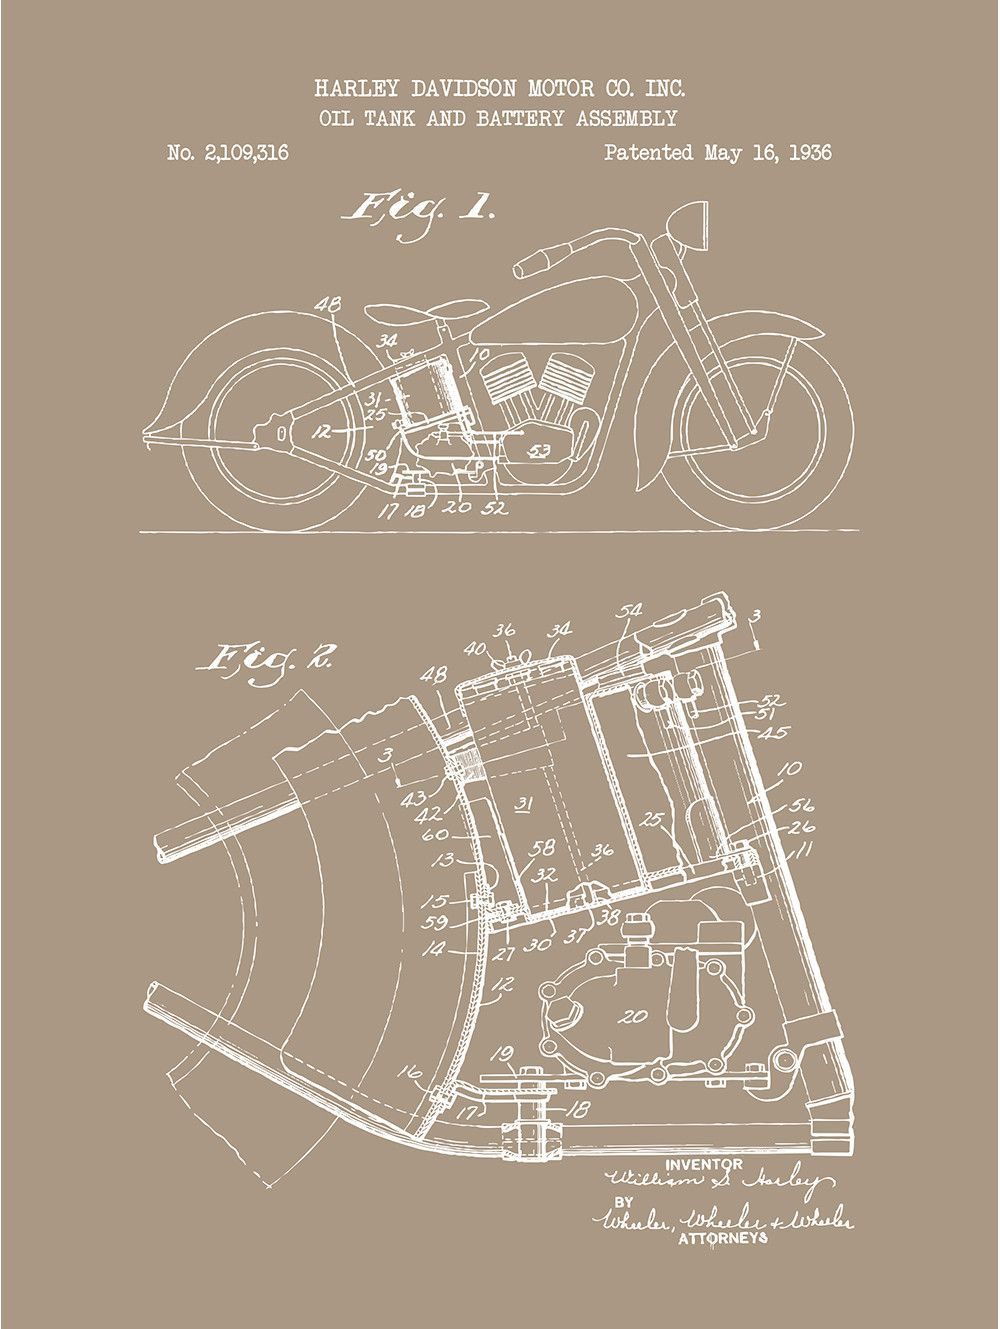 hight resolution of oil tank and battery assembly harley davidson motor co 1936